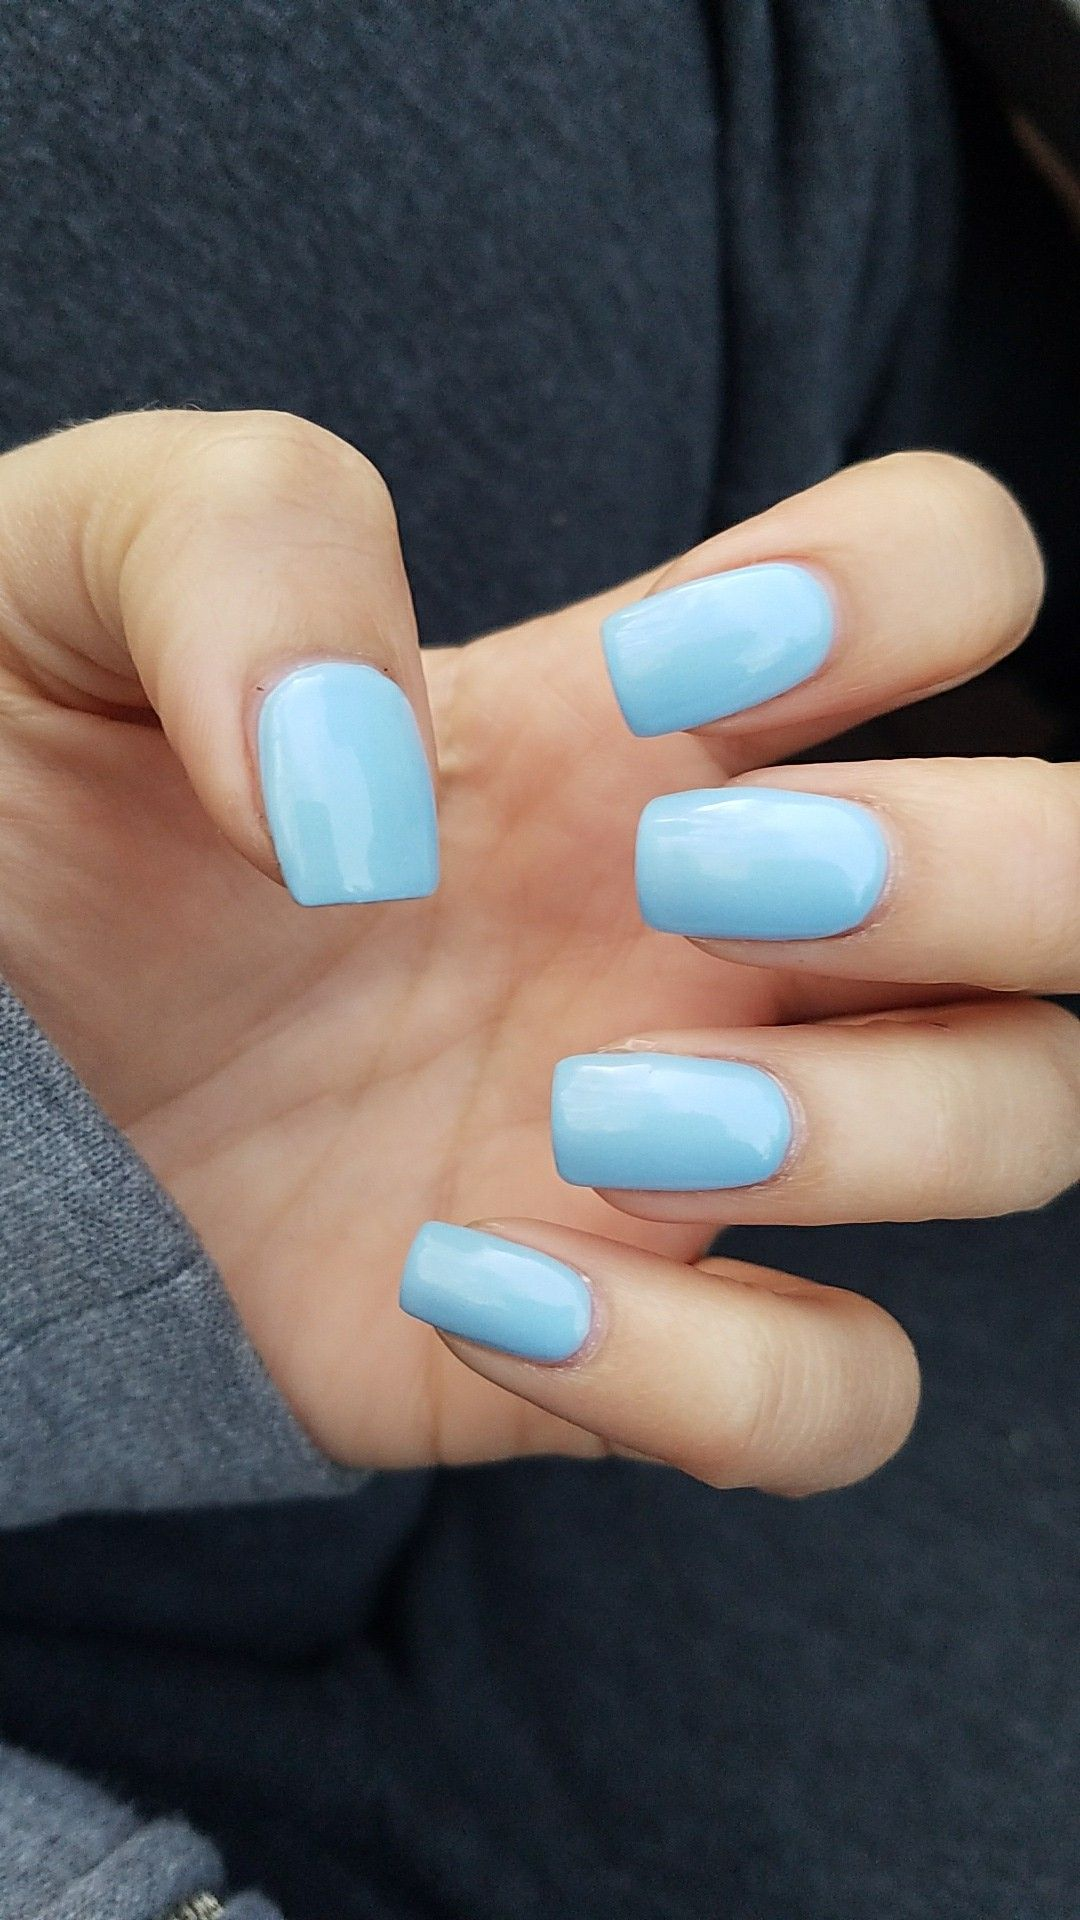 Short Square Light Blue Nails Short Square Acrylic Nails Light Blue Nails Square Nails